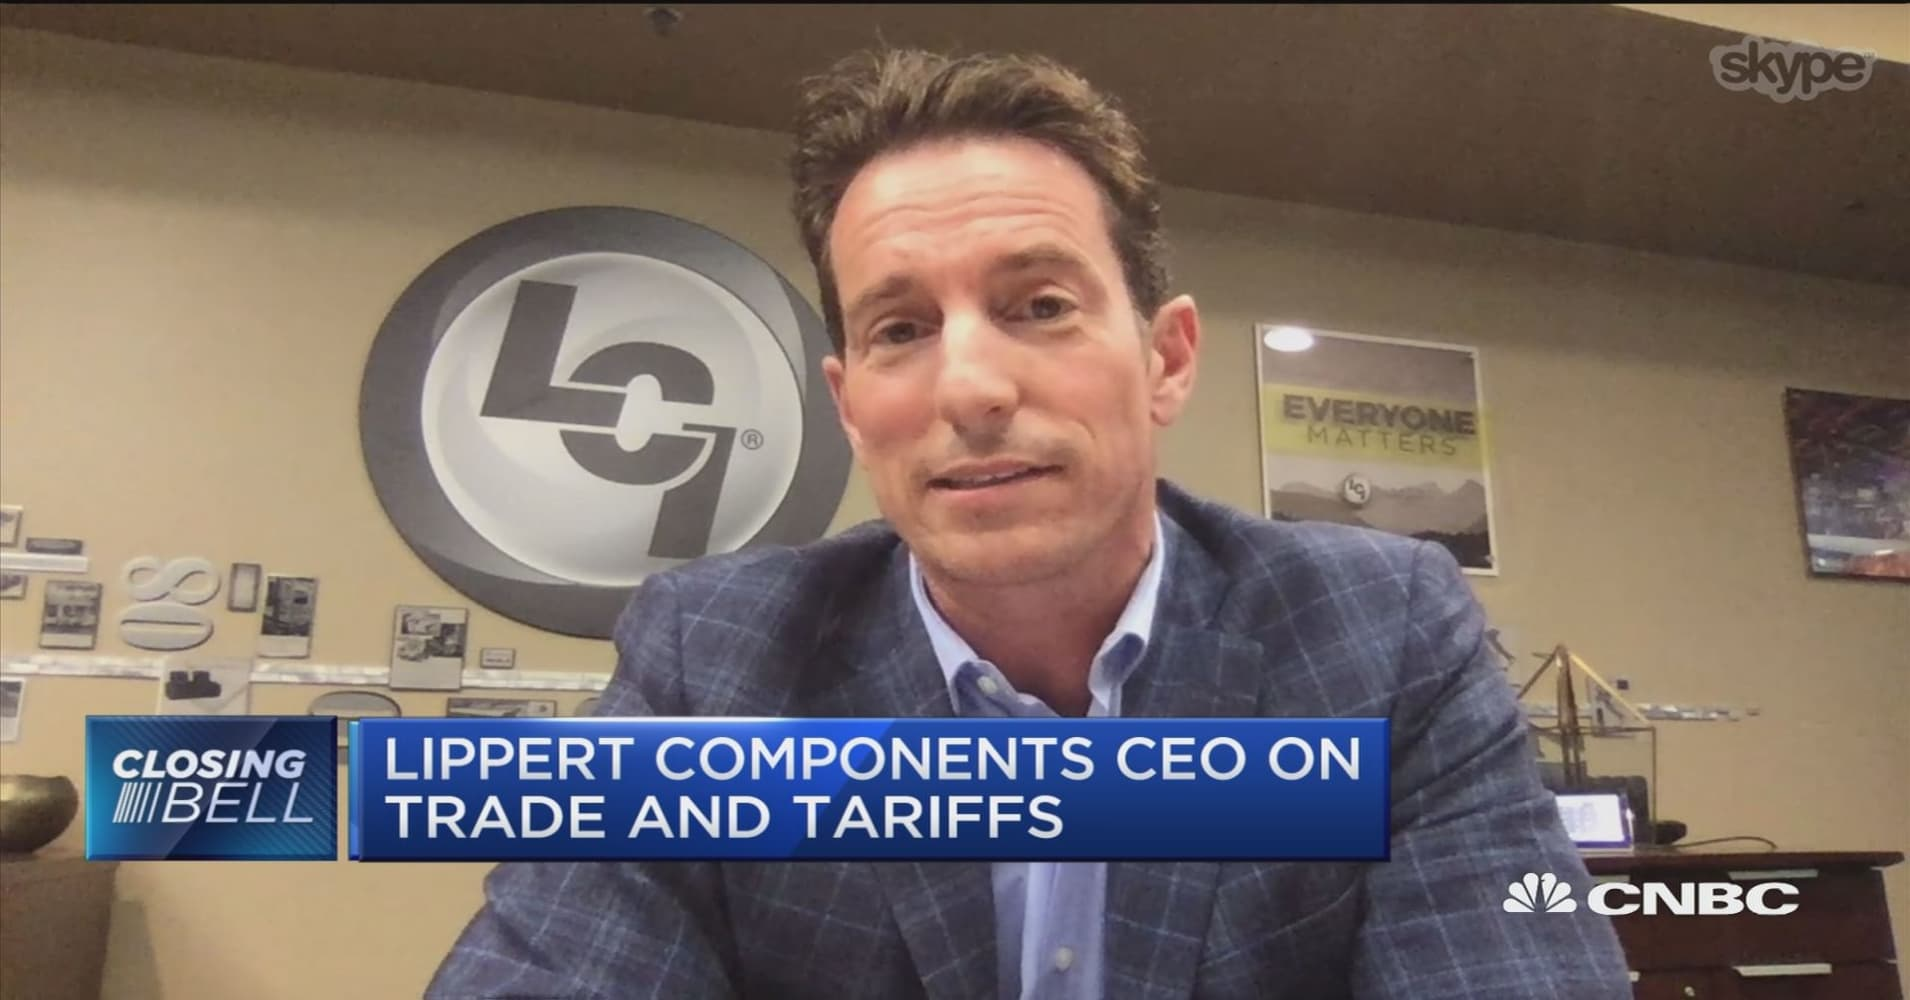 Lippert Components CEO on steel tariffs: We have to find ways to mitigate  those costs